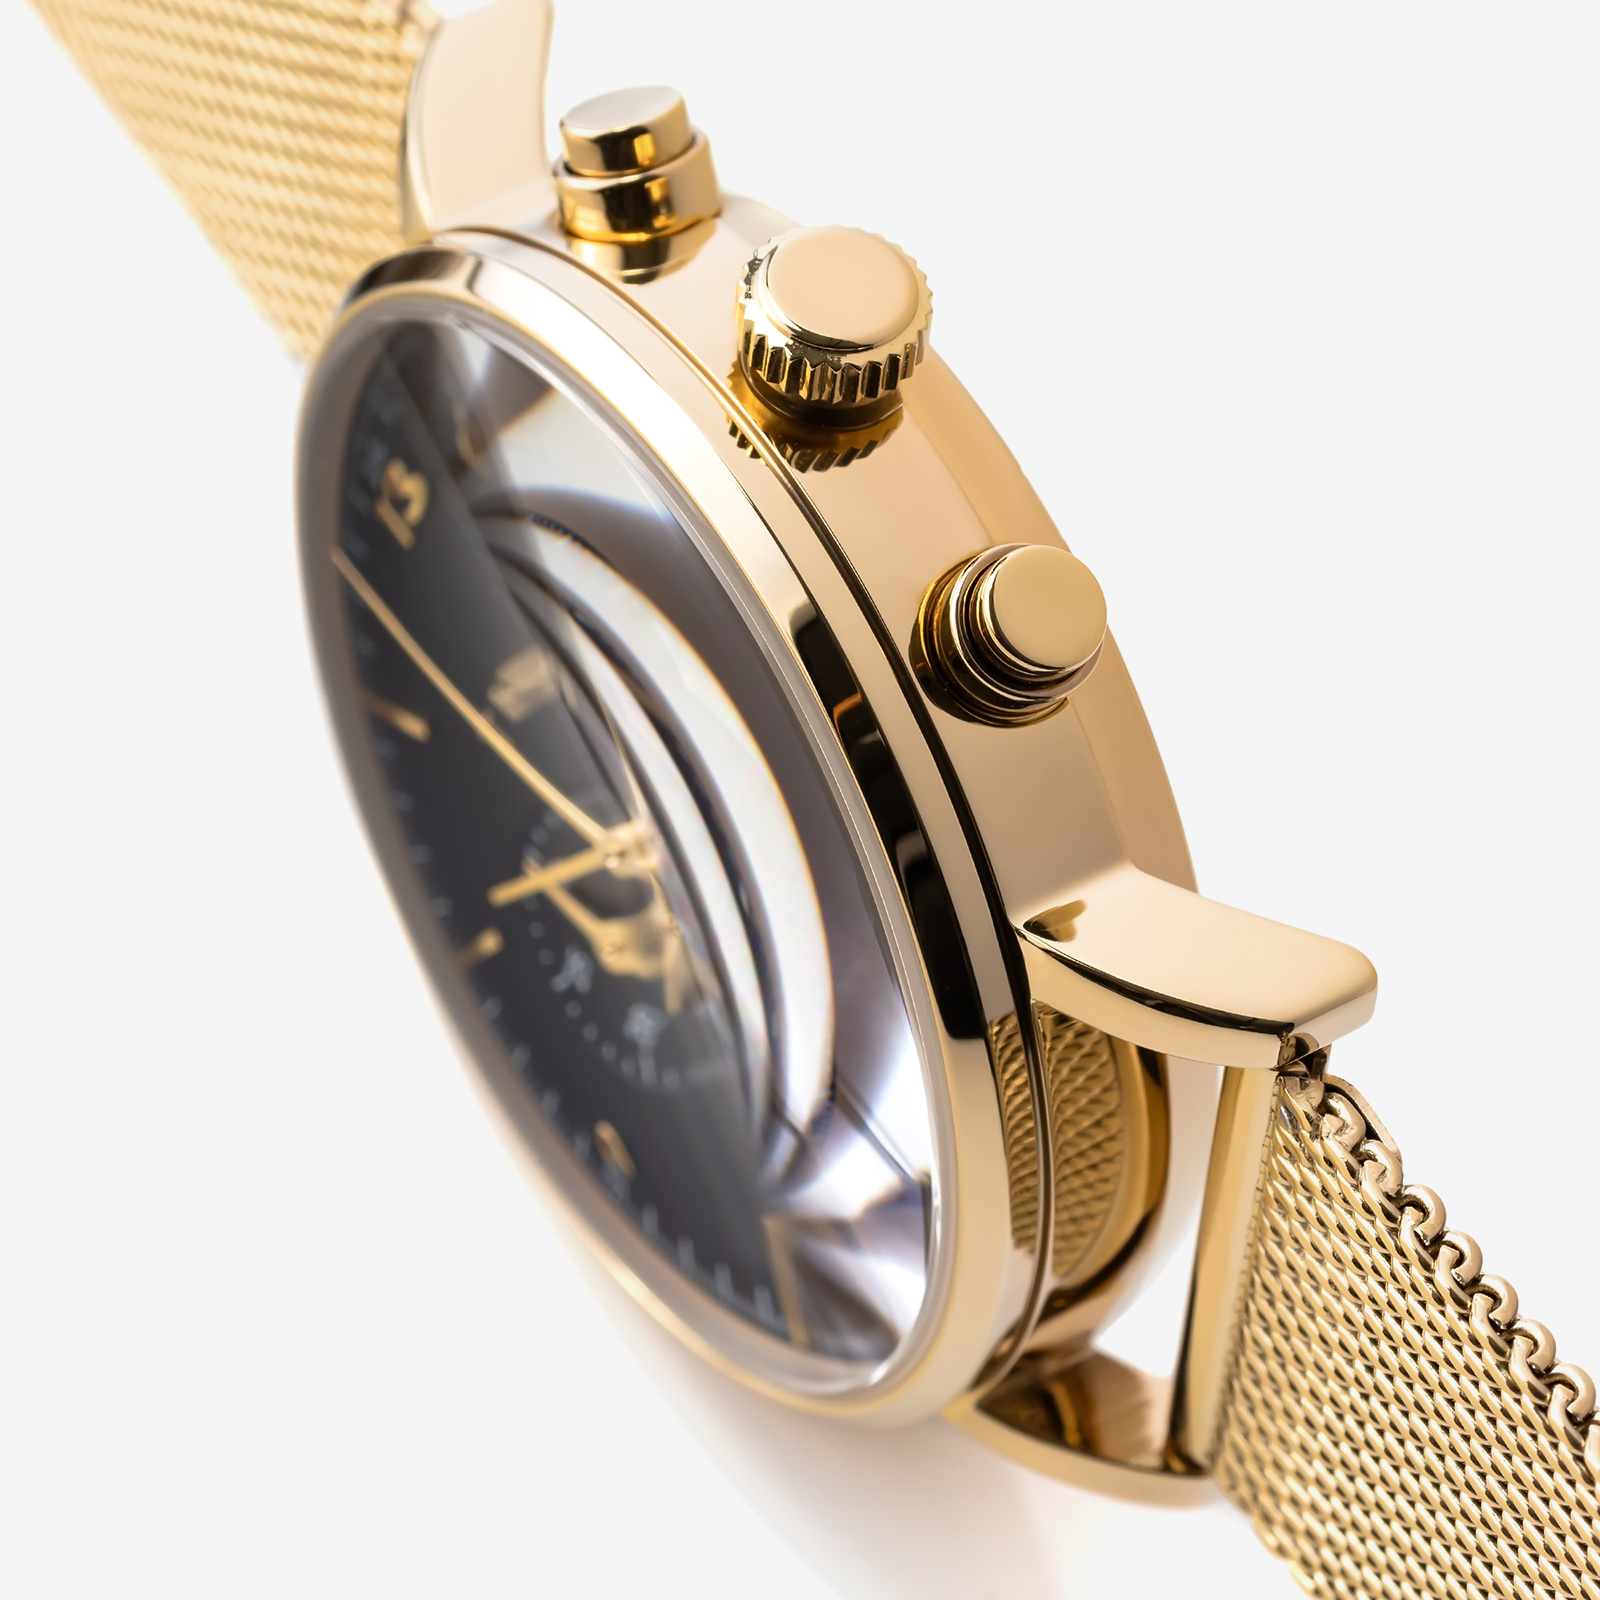 Golden watch product photo